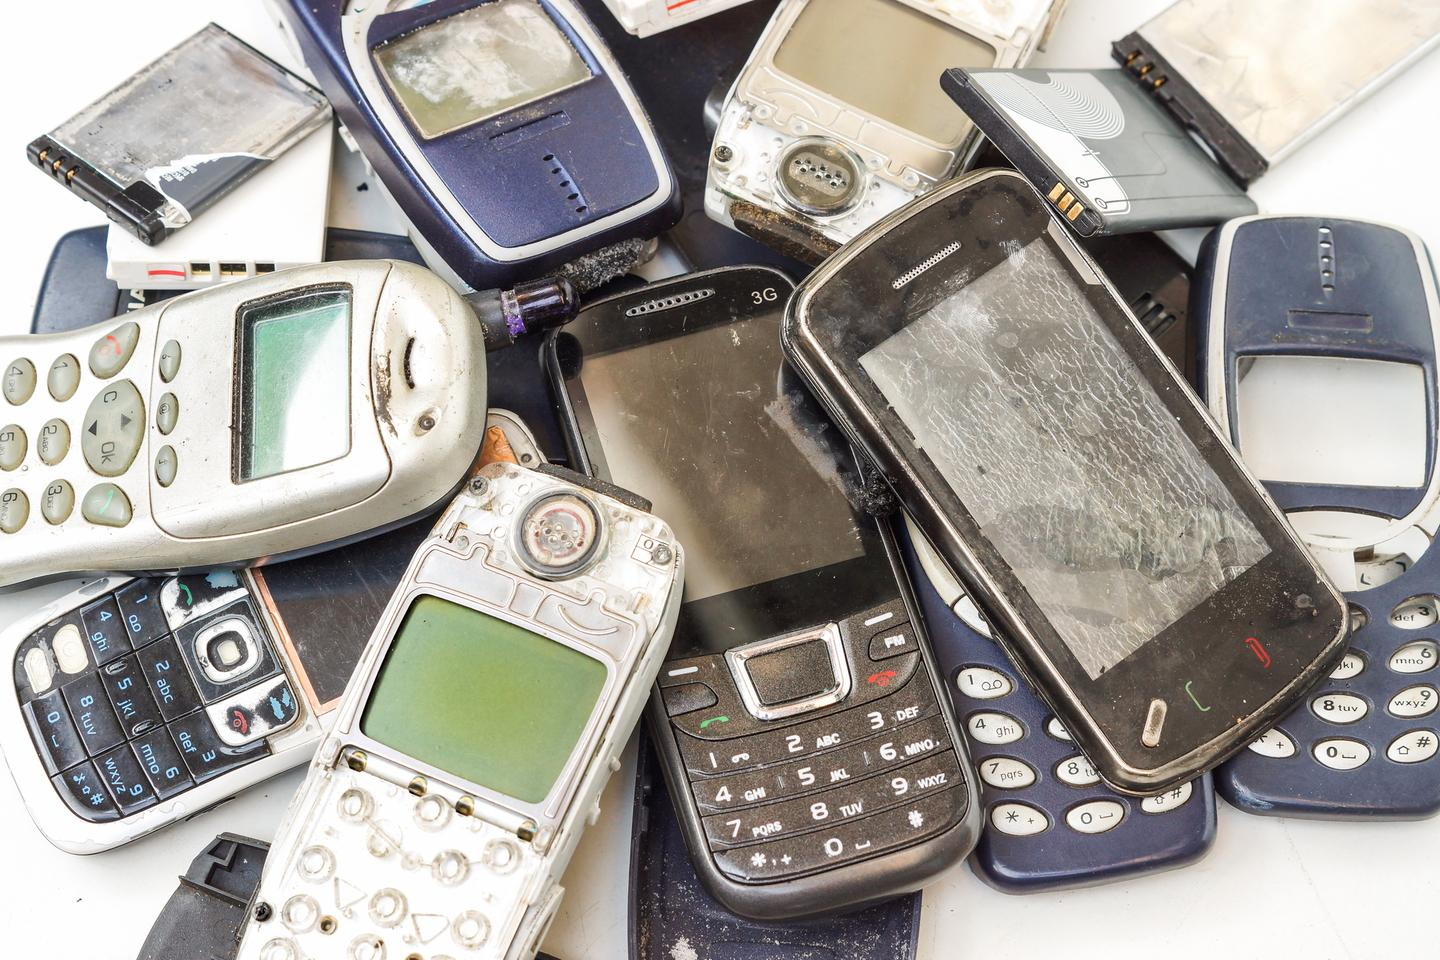 Researchers have developed a way to recover precious metals from electronic waste